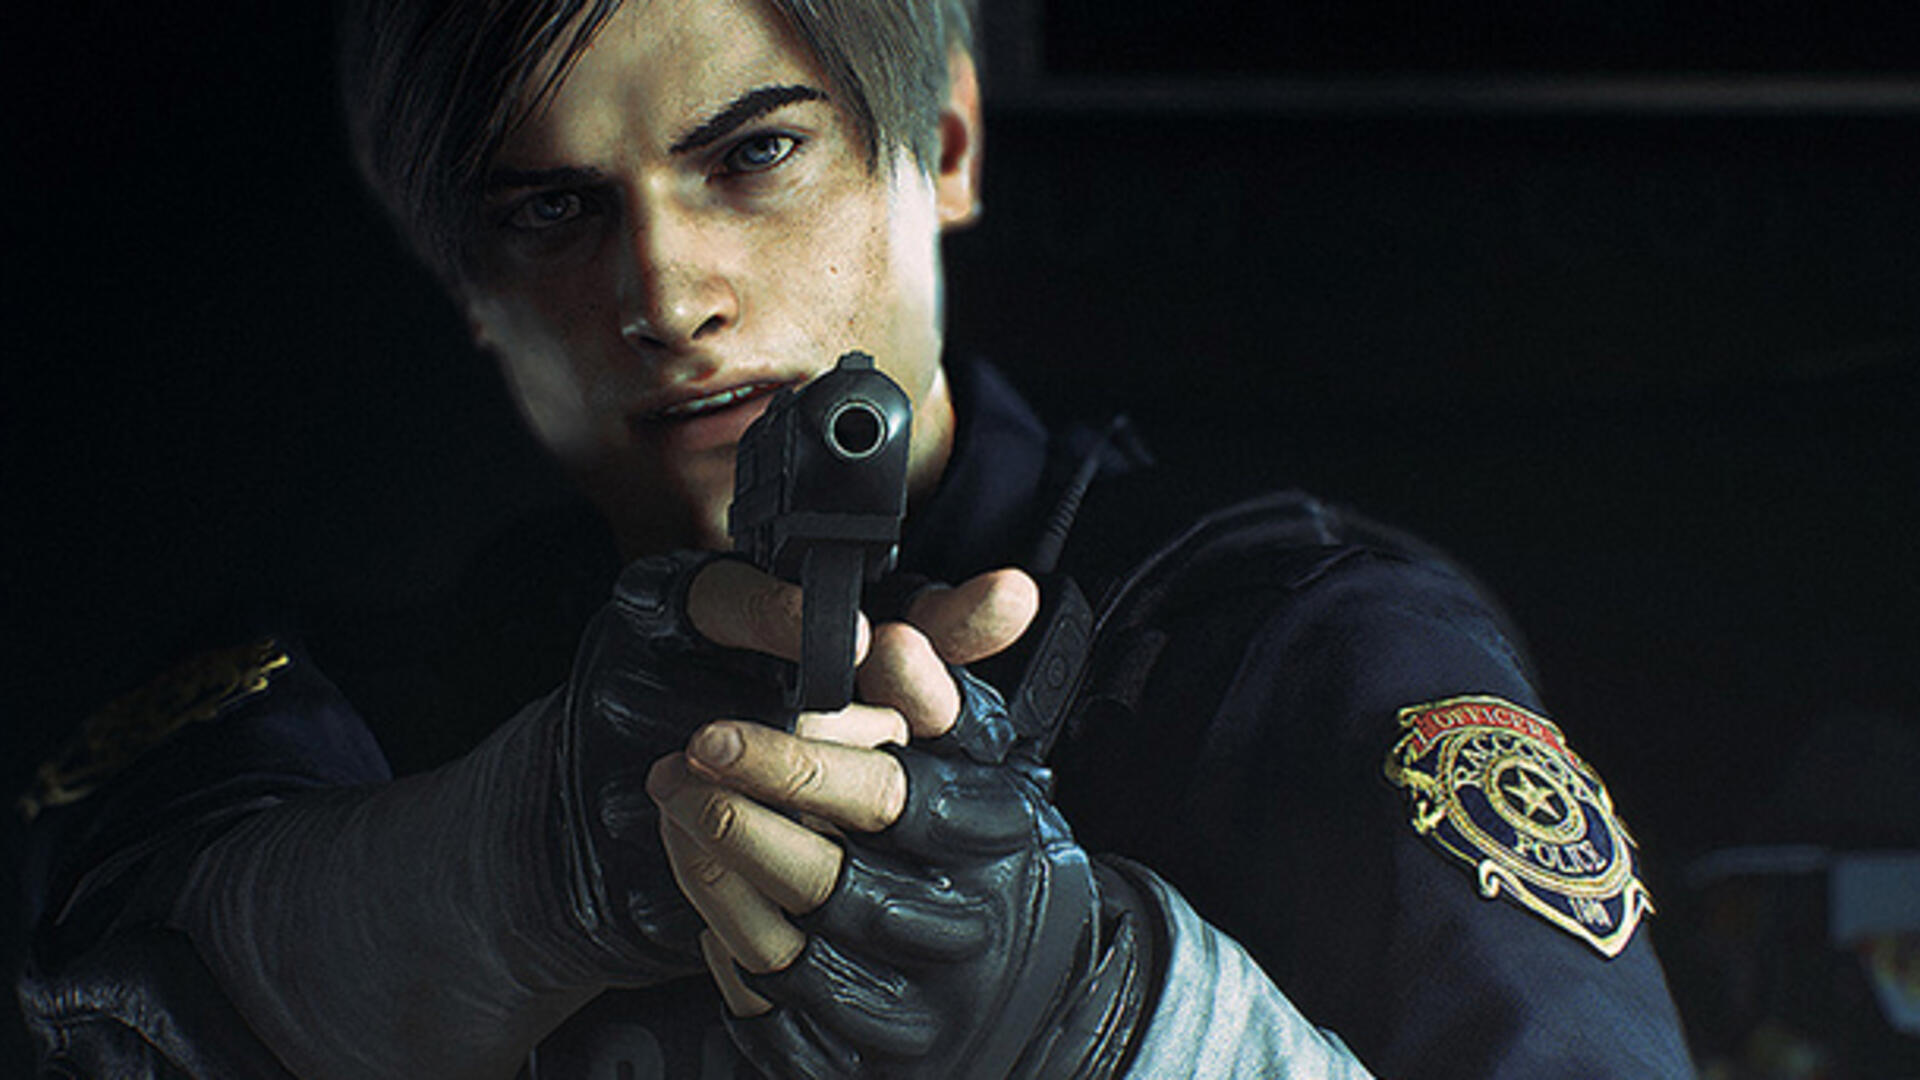 Resident Evil 2 Review Roundup - Release Date, Demo, PC